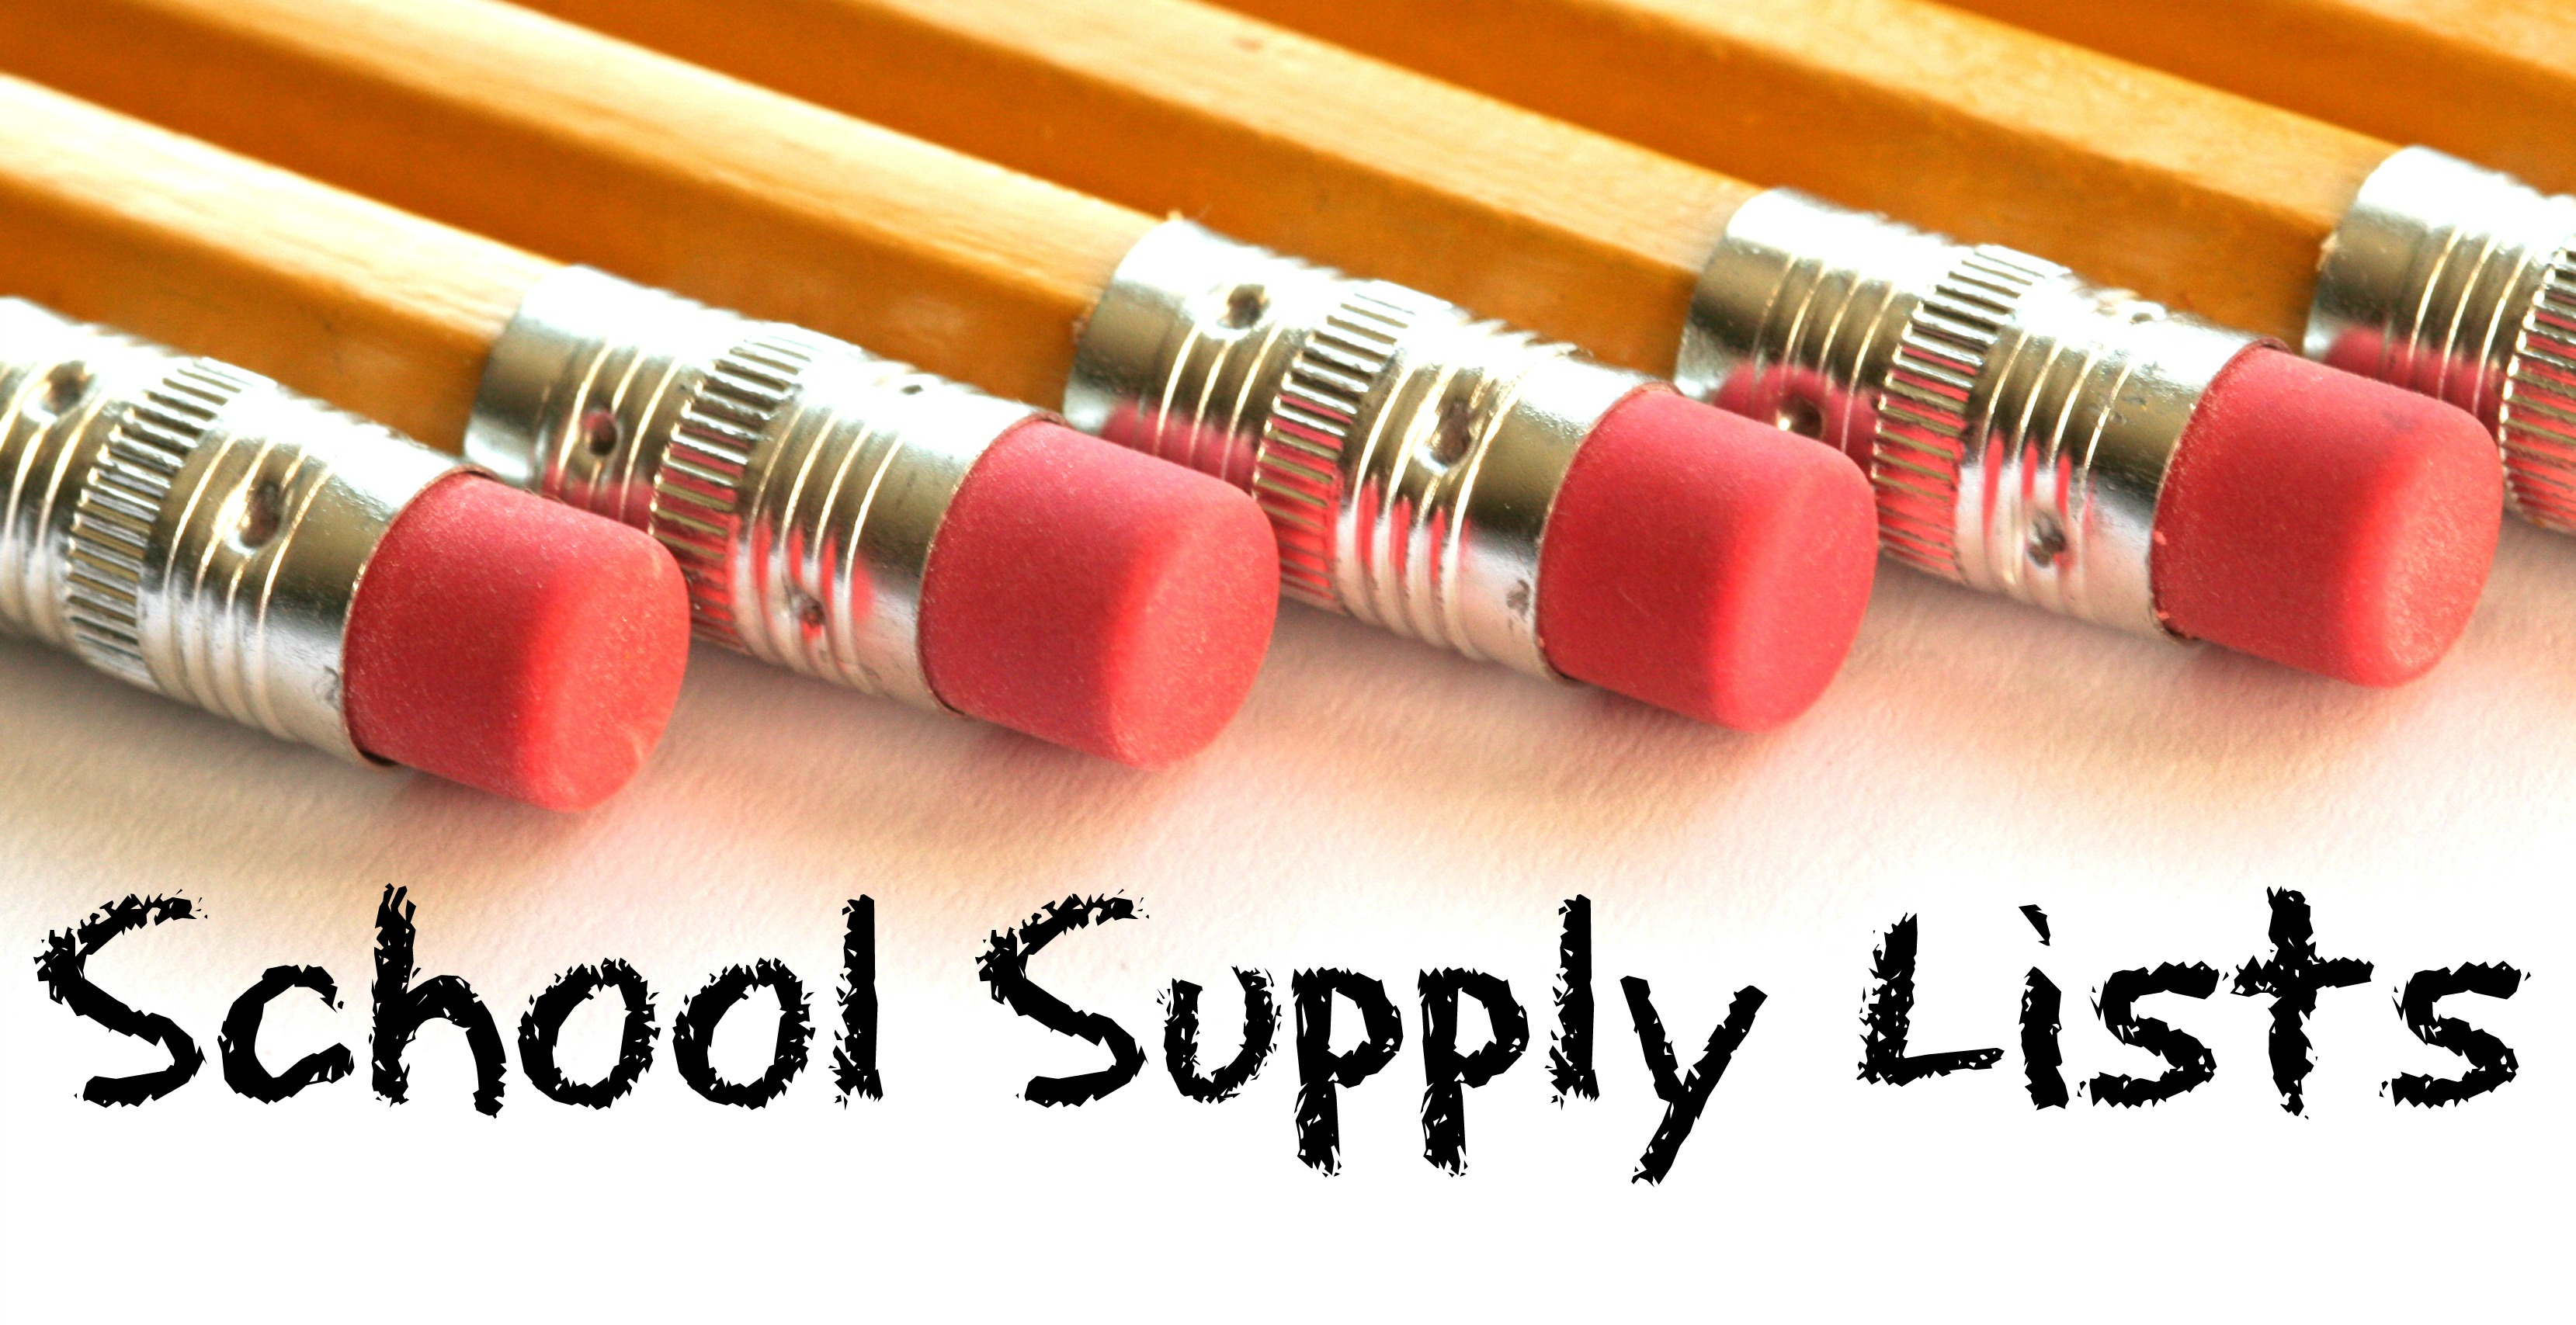 School supply lists picture